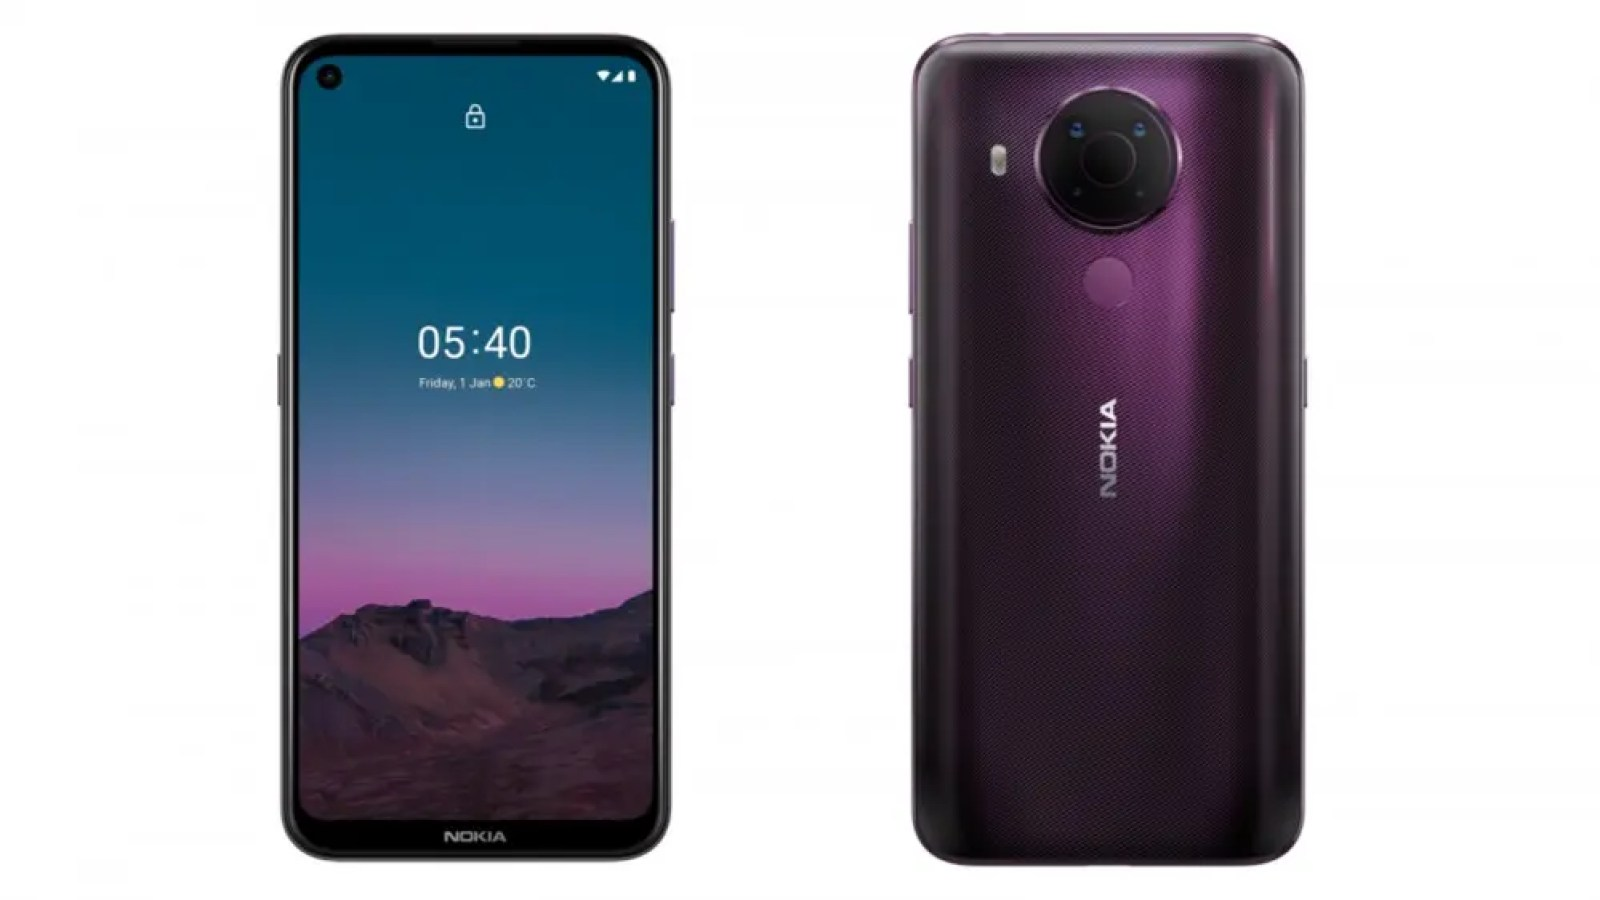 Front and back of Nokia 5.4 smartphone